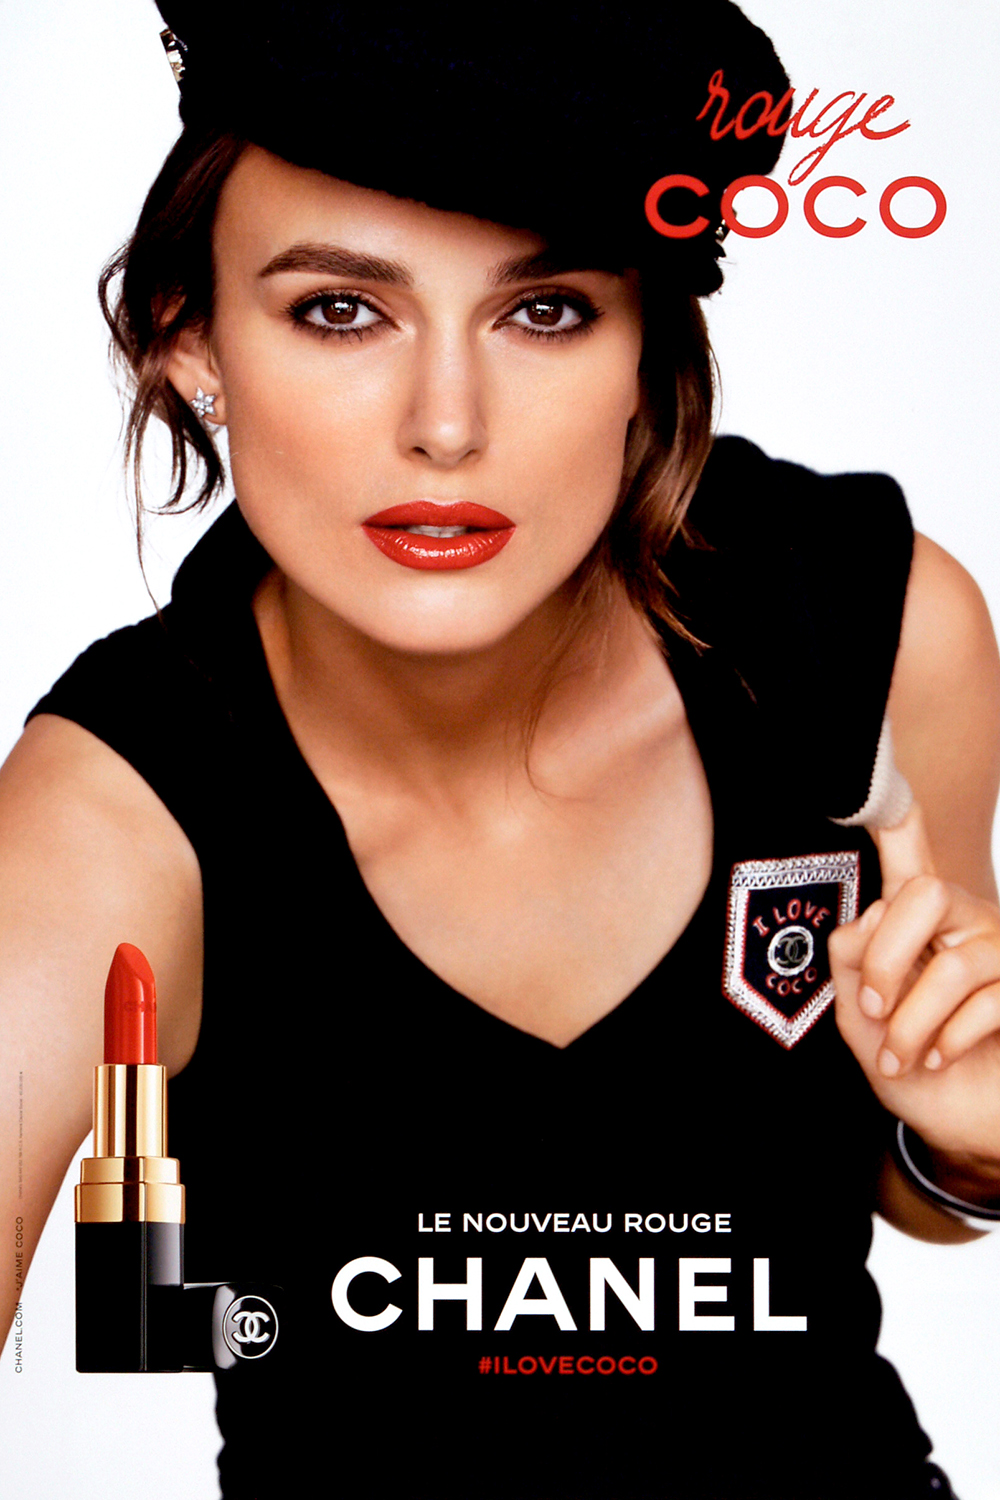 chanel-rouge-a-levres-keira-knightley-publicite-marketing-luxe-2016